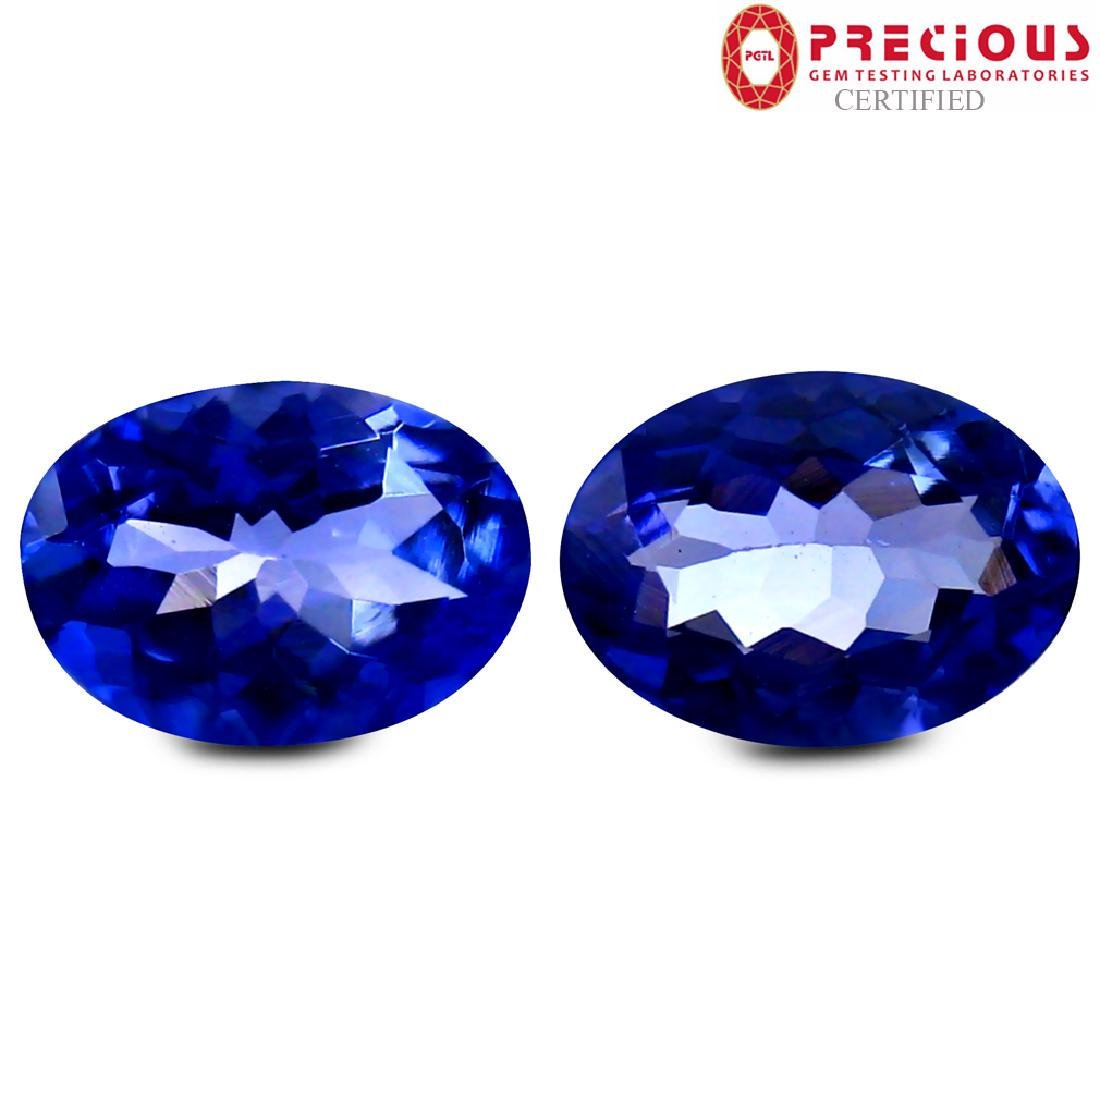 2.01 ct PGTL Certified Valuable Oval Shape Purplish